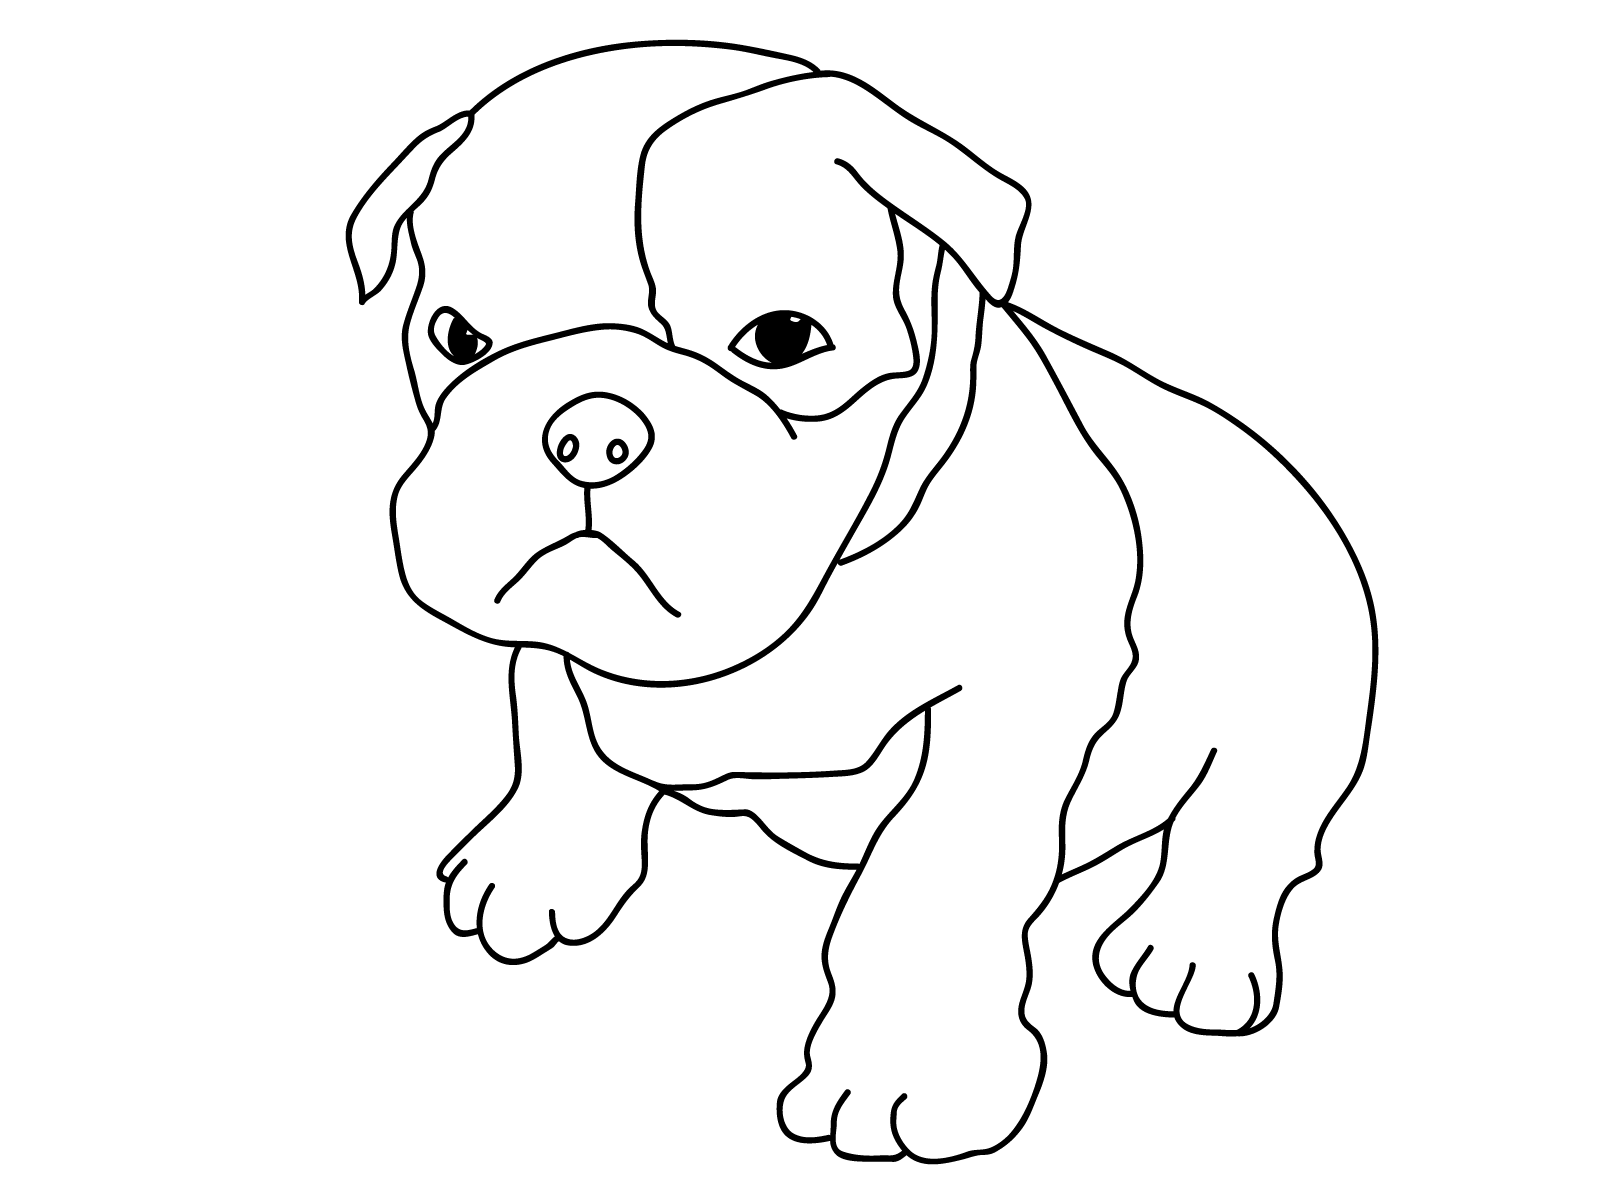 coloring pages of a dog free printable dog coloring pages dog coloring pages pages coloring of a dog